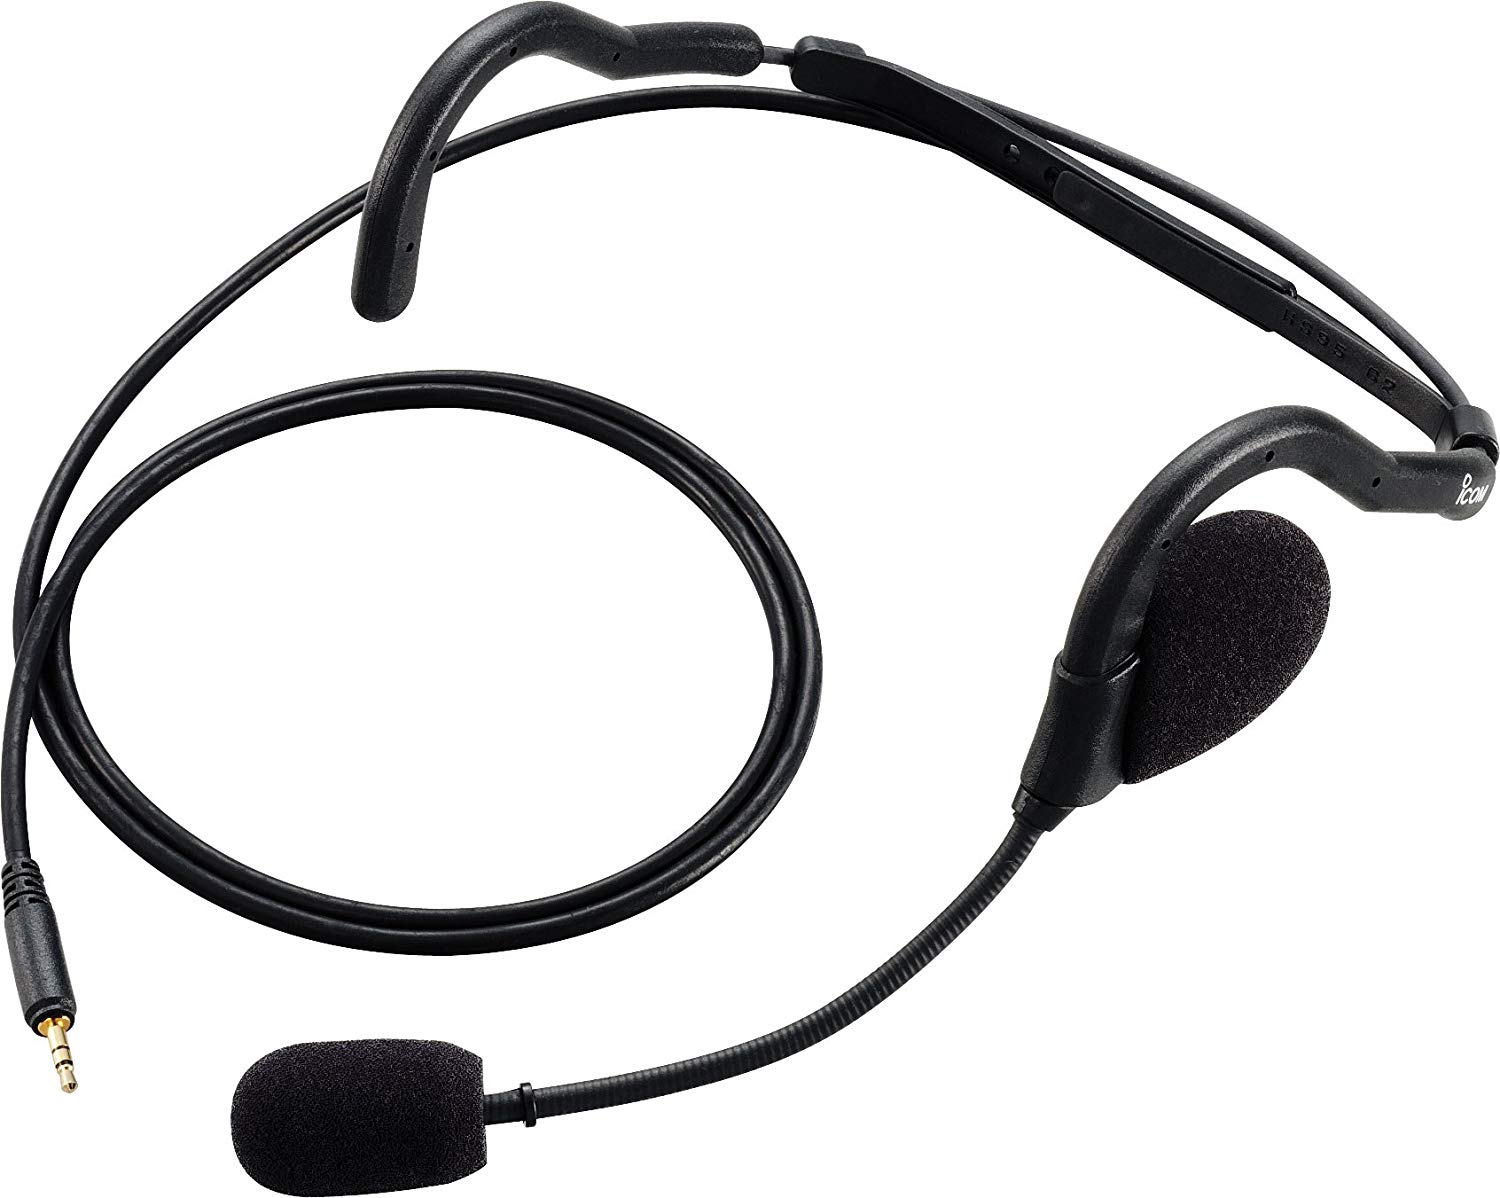 Icom HS-95 Behind The Head Headset F/M72 Requires VS1 - # HS95